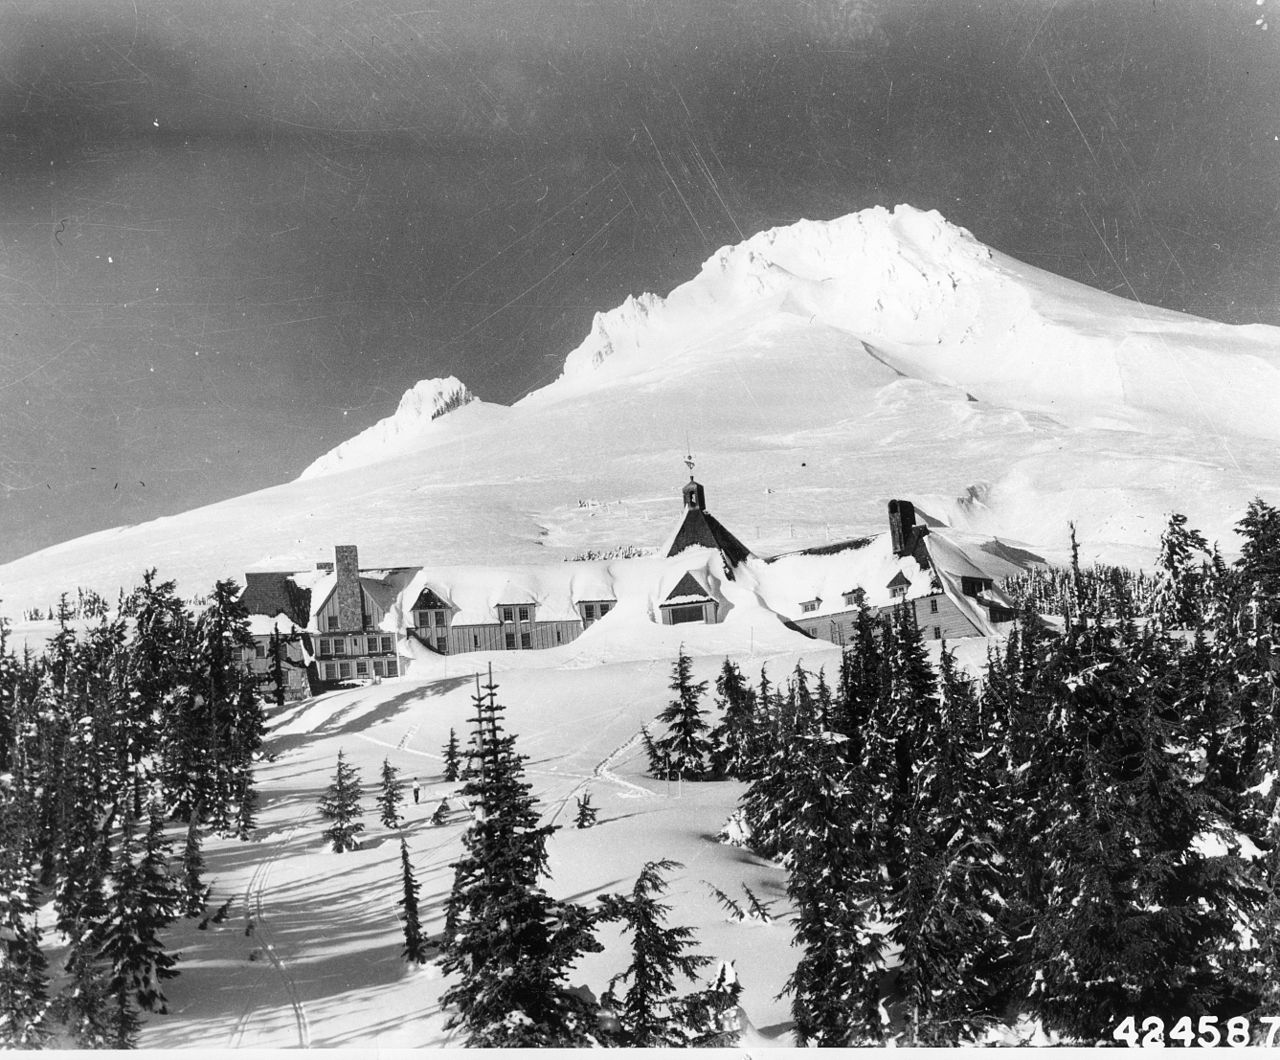 Mt Hood and Timberline Lodge, circa 1943.